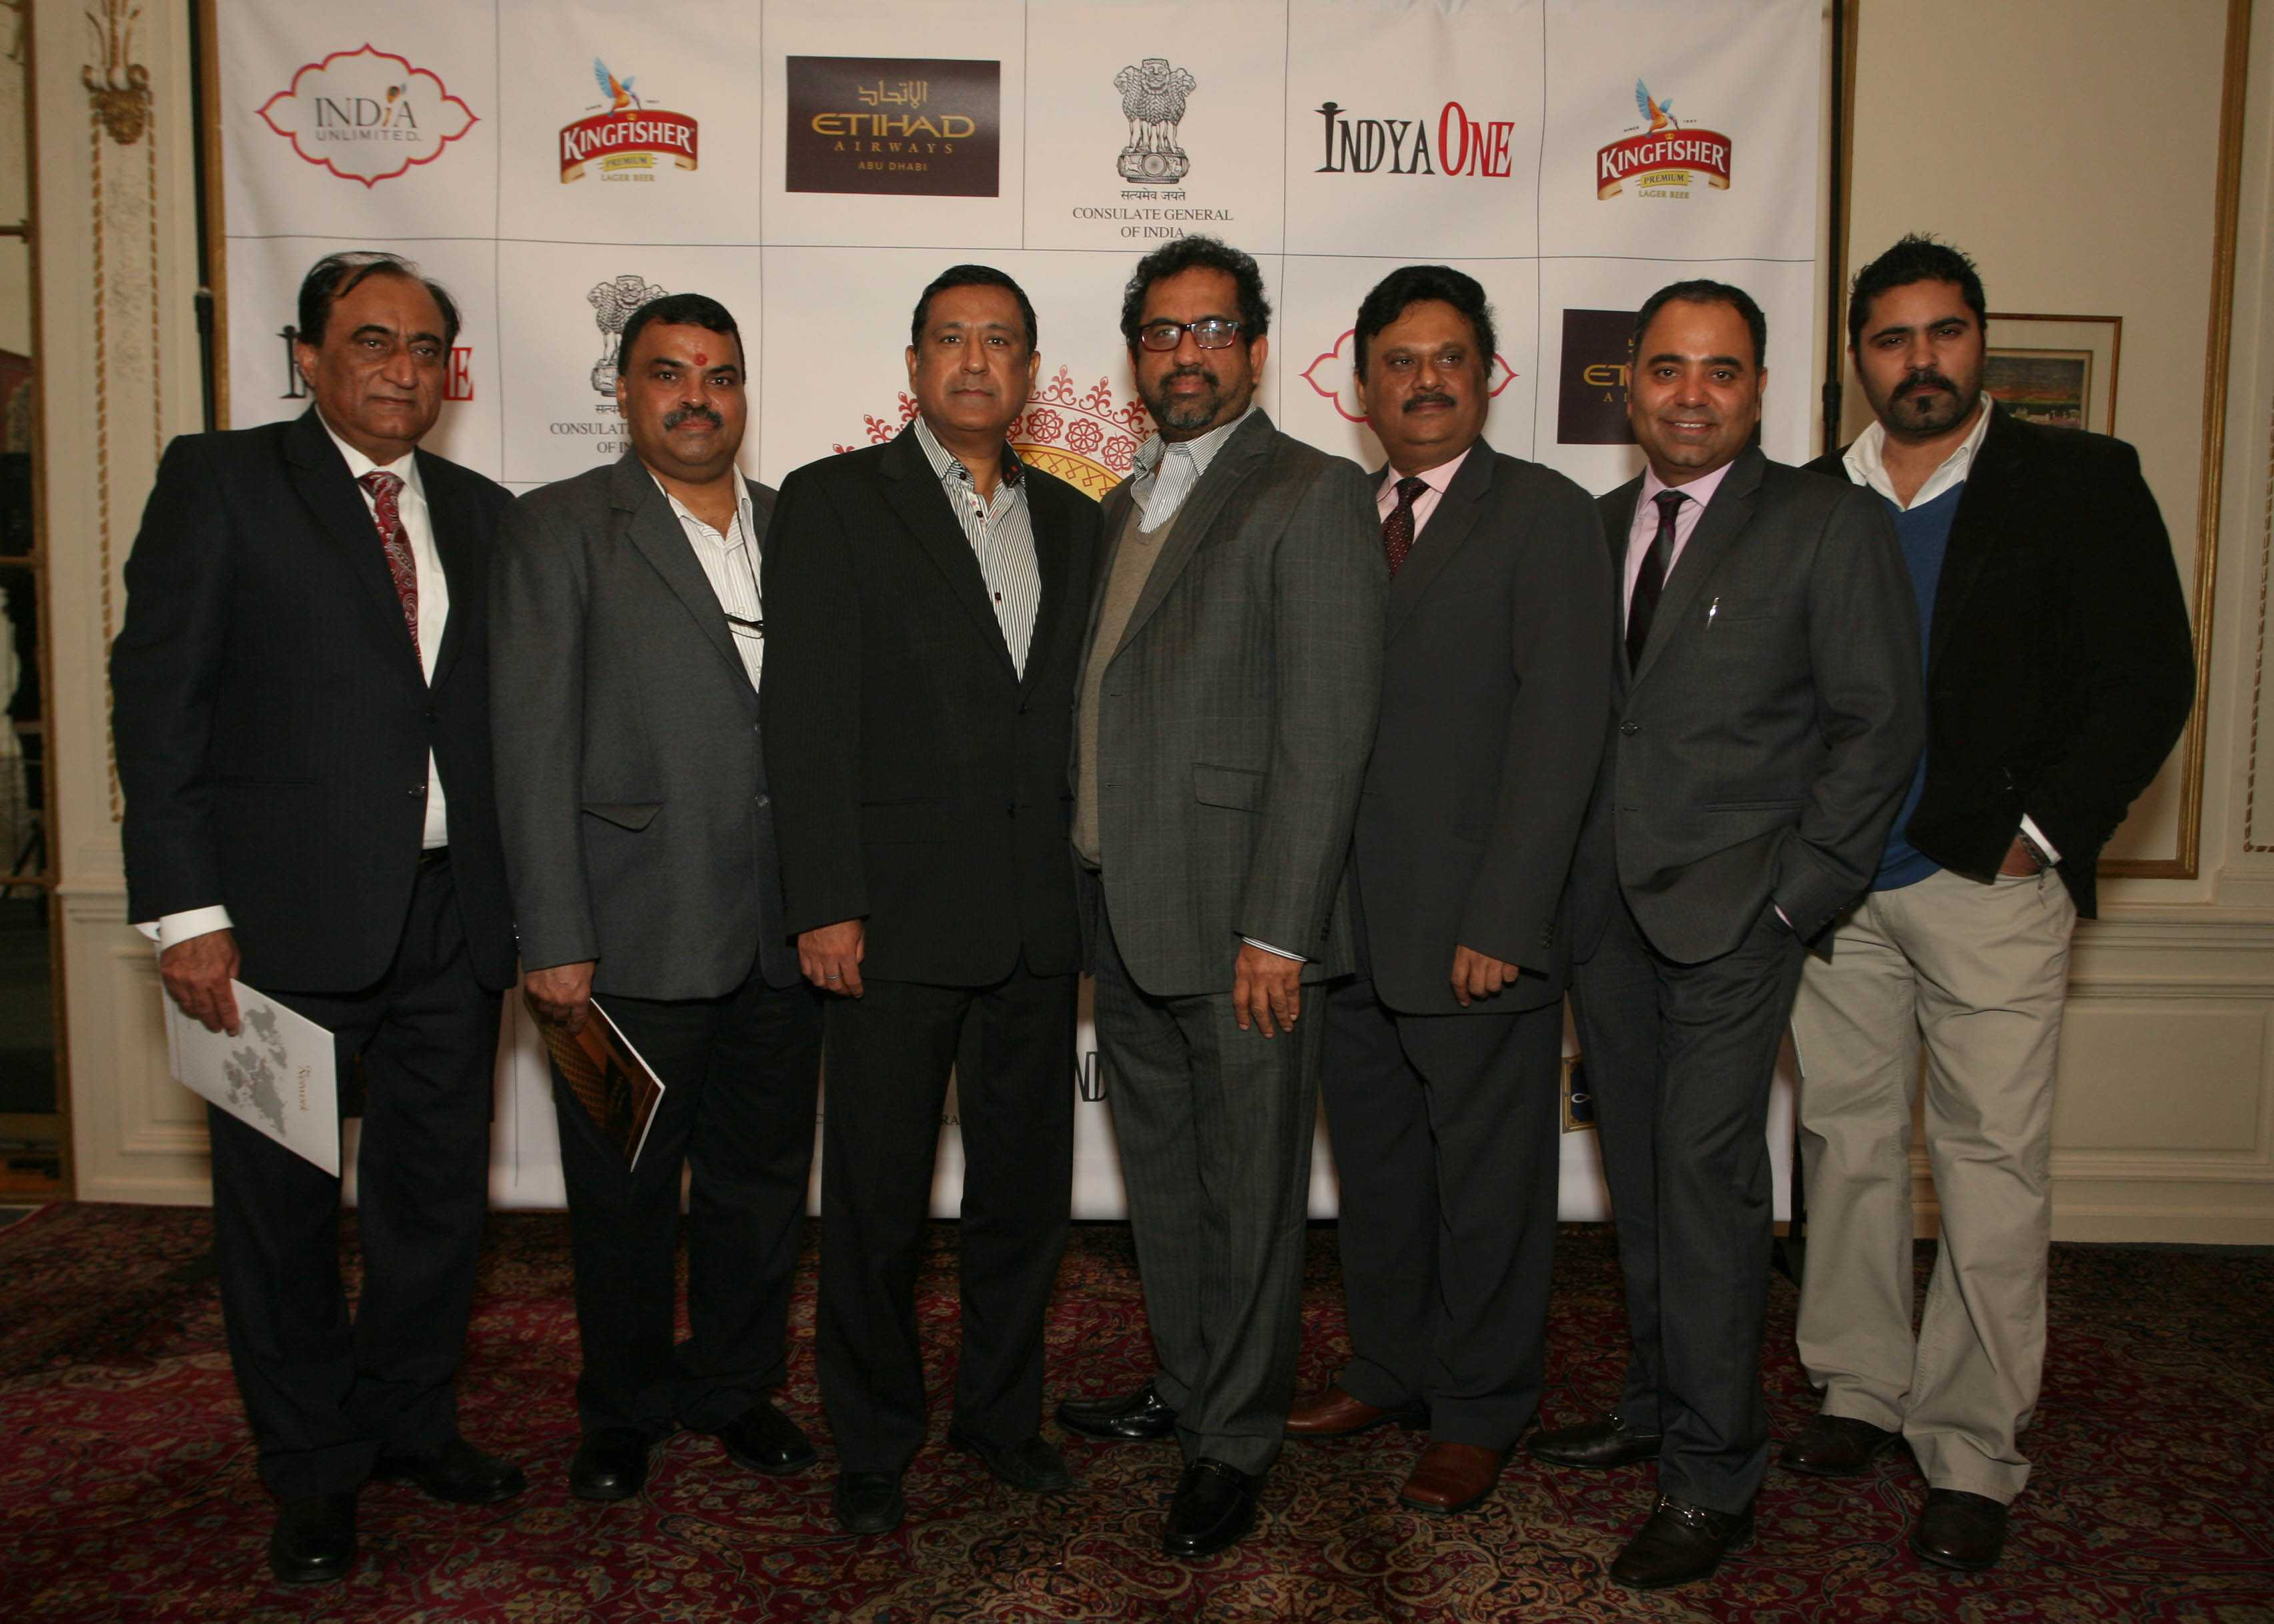 The core group of New York restaurateurs supporting India Festive Food Week, from left: Mohan Ahluwalia of Bombay Palace, Hemant Mathur of Tulsi, Rajesh Bhardwaj of Junoon, Satarajan of Chola, Nitin Vyas of Madras Mahal, Kamal Arora of Hospitality Group and Ravi Pillai of Bombay Duck  Company at the announcement at the Indian Consulate. (Photo: Gunjesh Desai, Masala Junction).